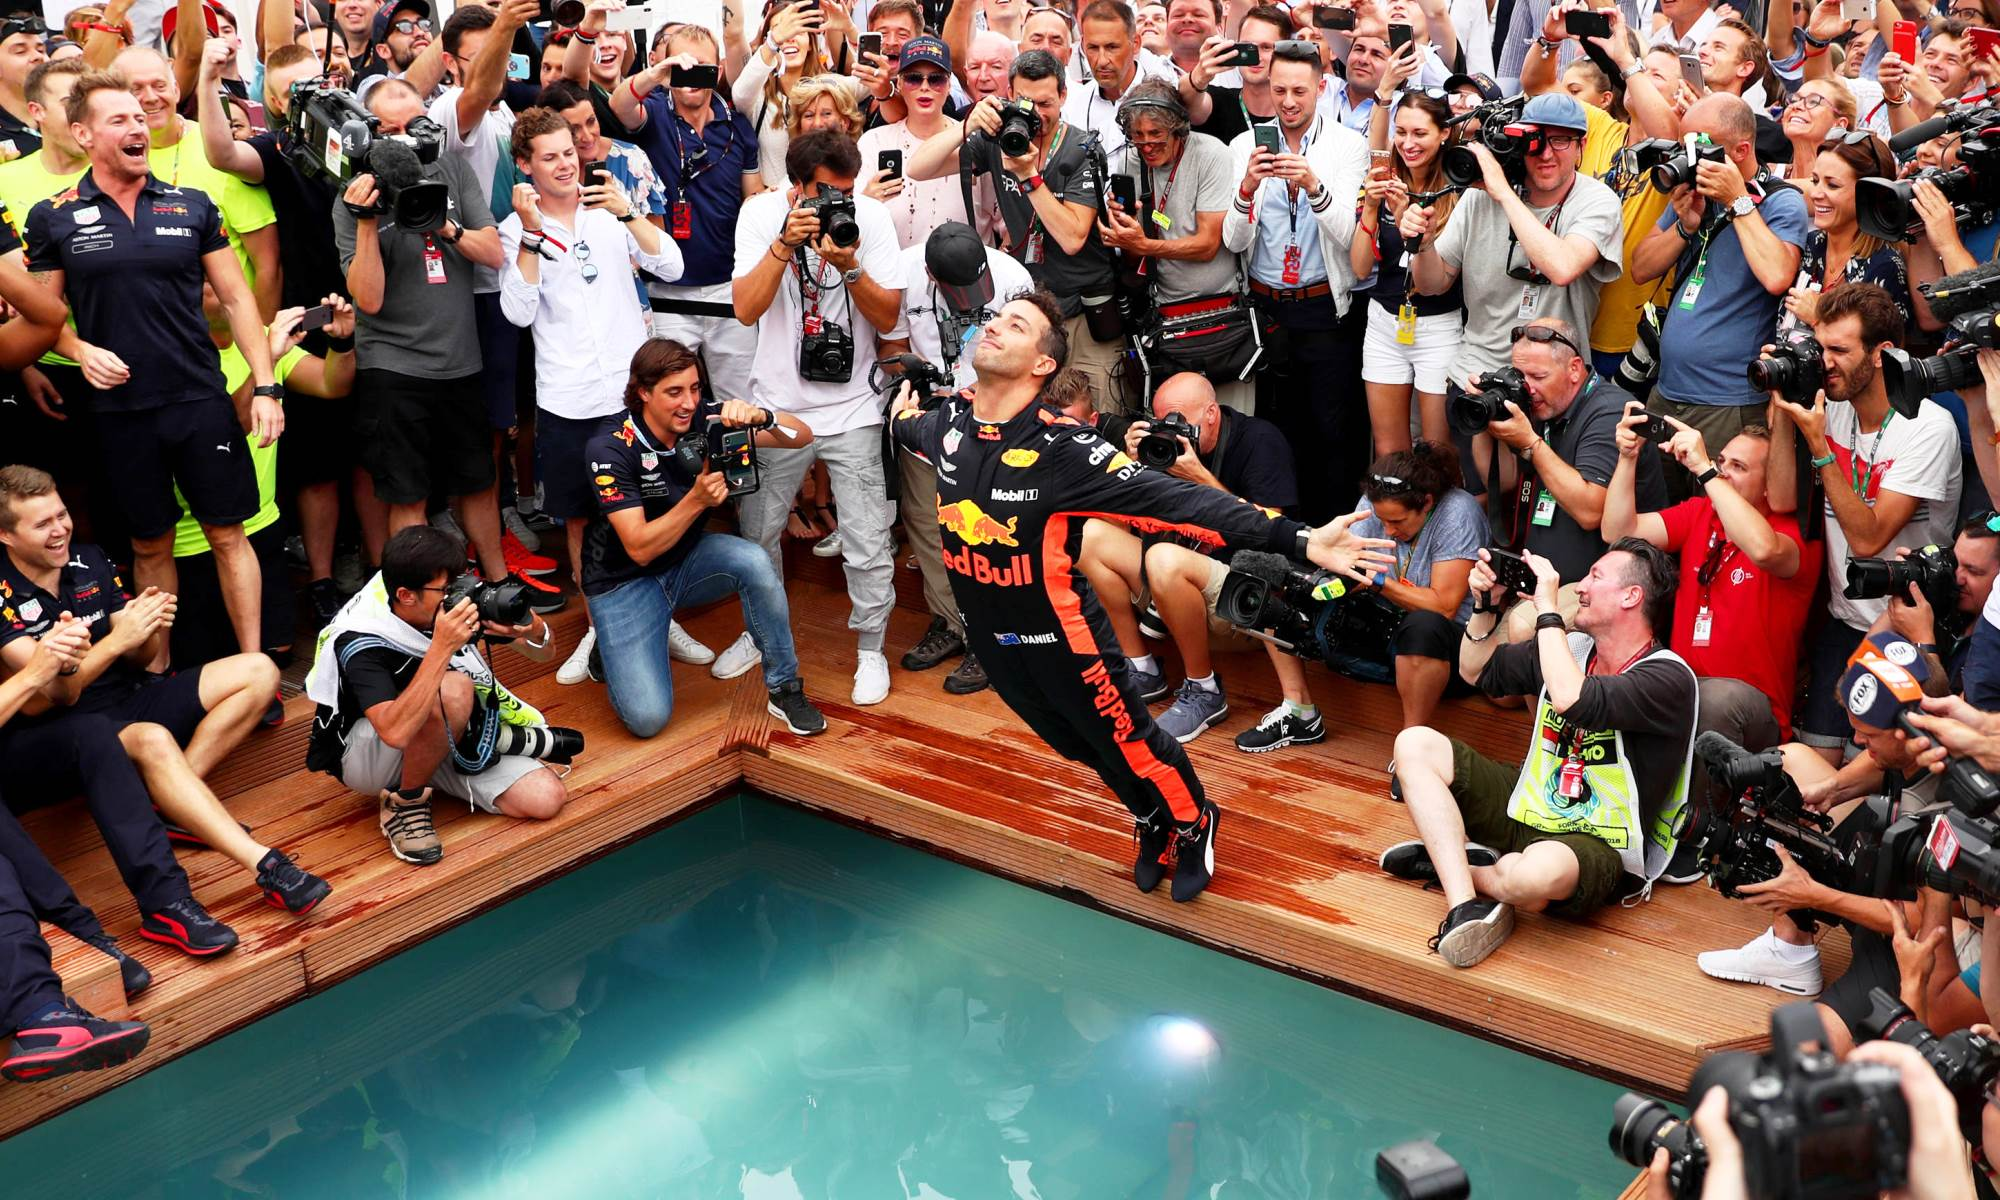 The Aussie driver celebrated his win by taking a dip